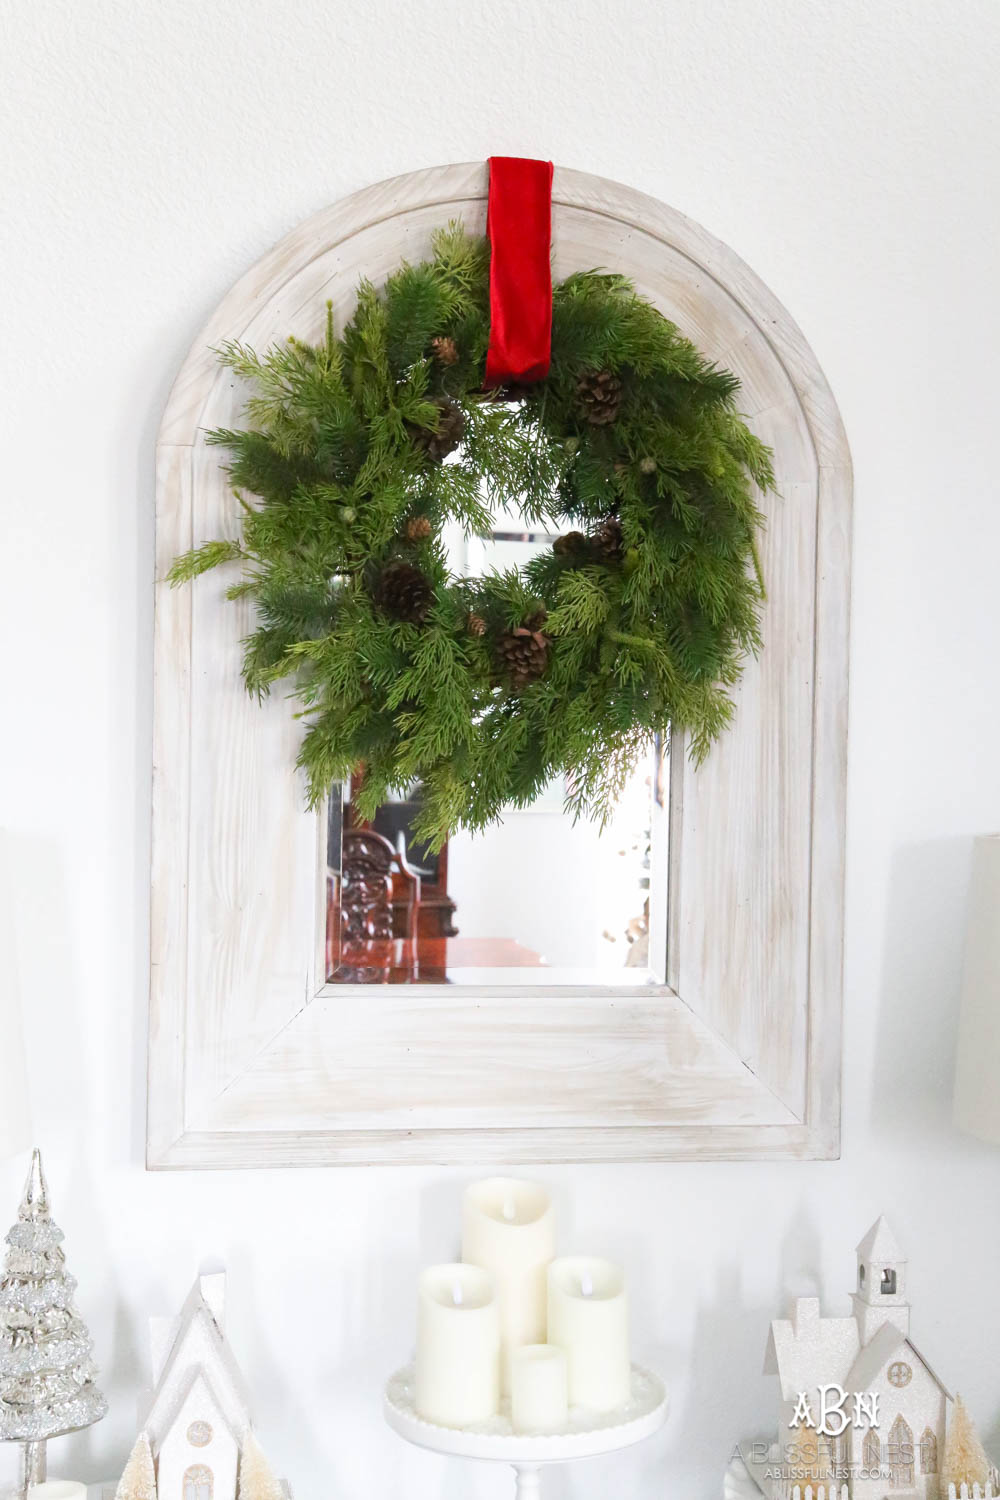 Simple classic Christmas wreath detail on a mirror in an entry. Simple holiday decor that makes a big impact. Red ribbon on a plain wreath. White walls in this holiday home which makes the décor really pop. #christmasentryway #christmasentry #christmasentrydecor #christmasentrywayideas #christmashometour